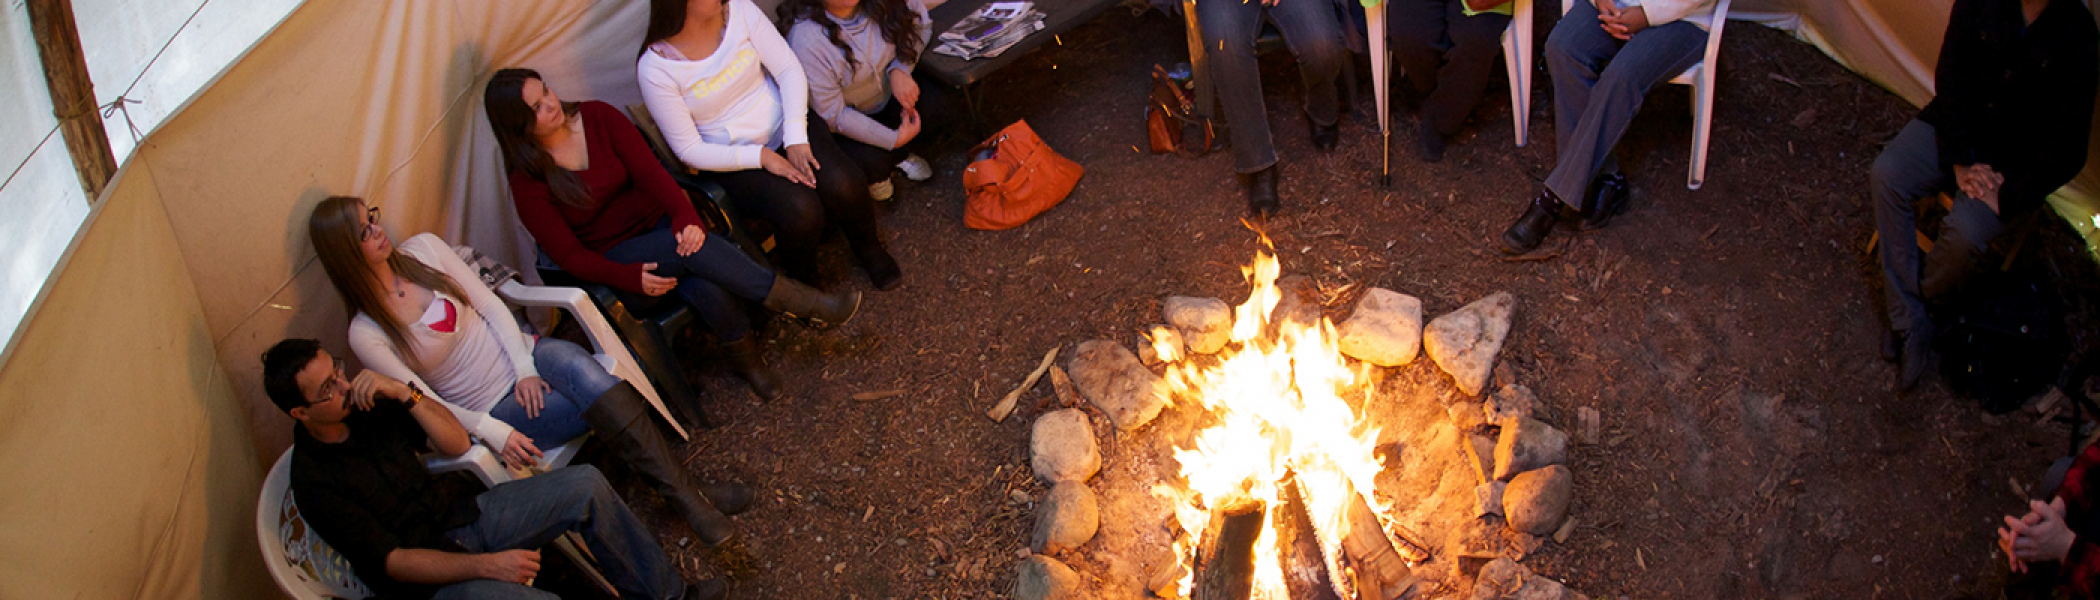 People sitting in a tipi with a fire lit